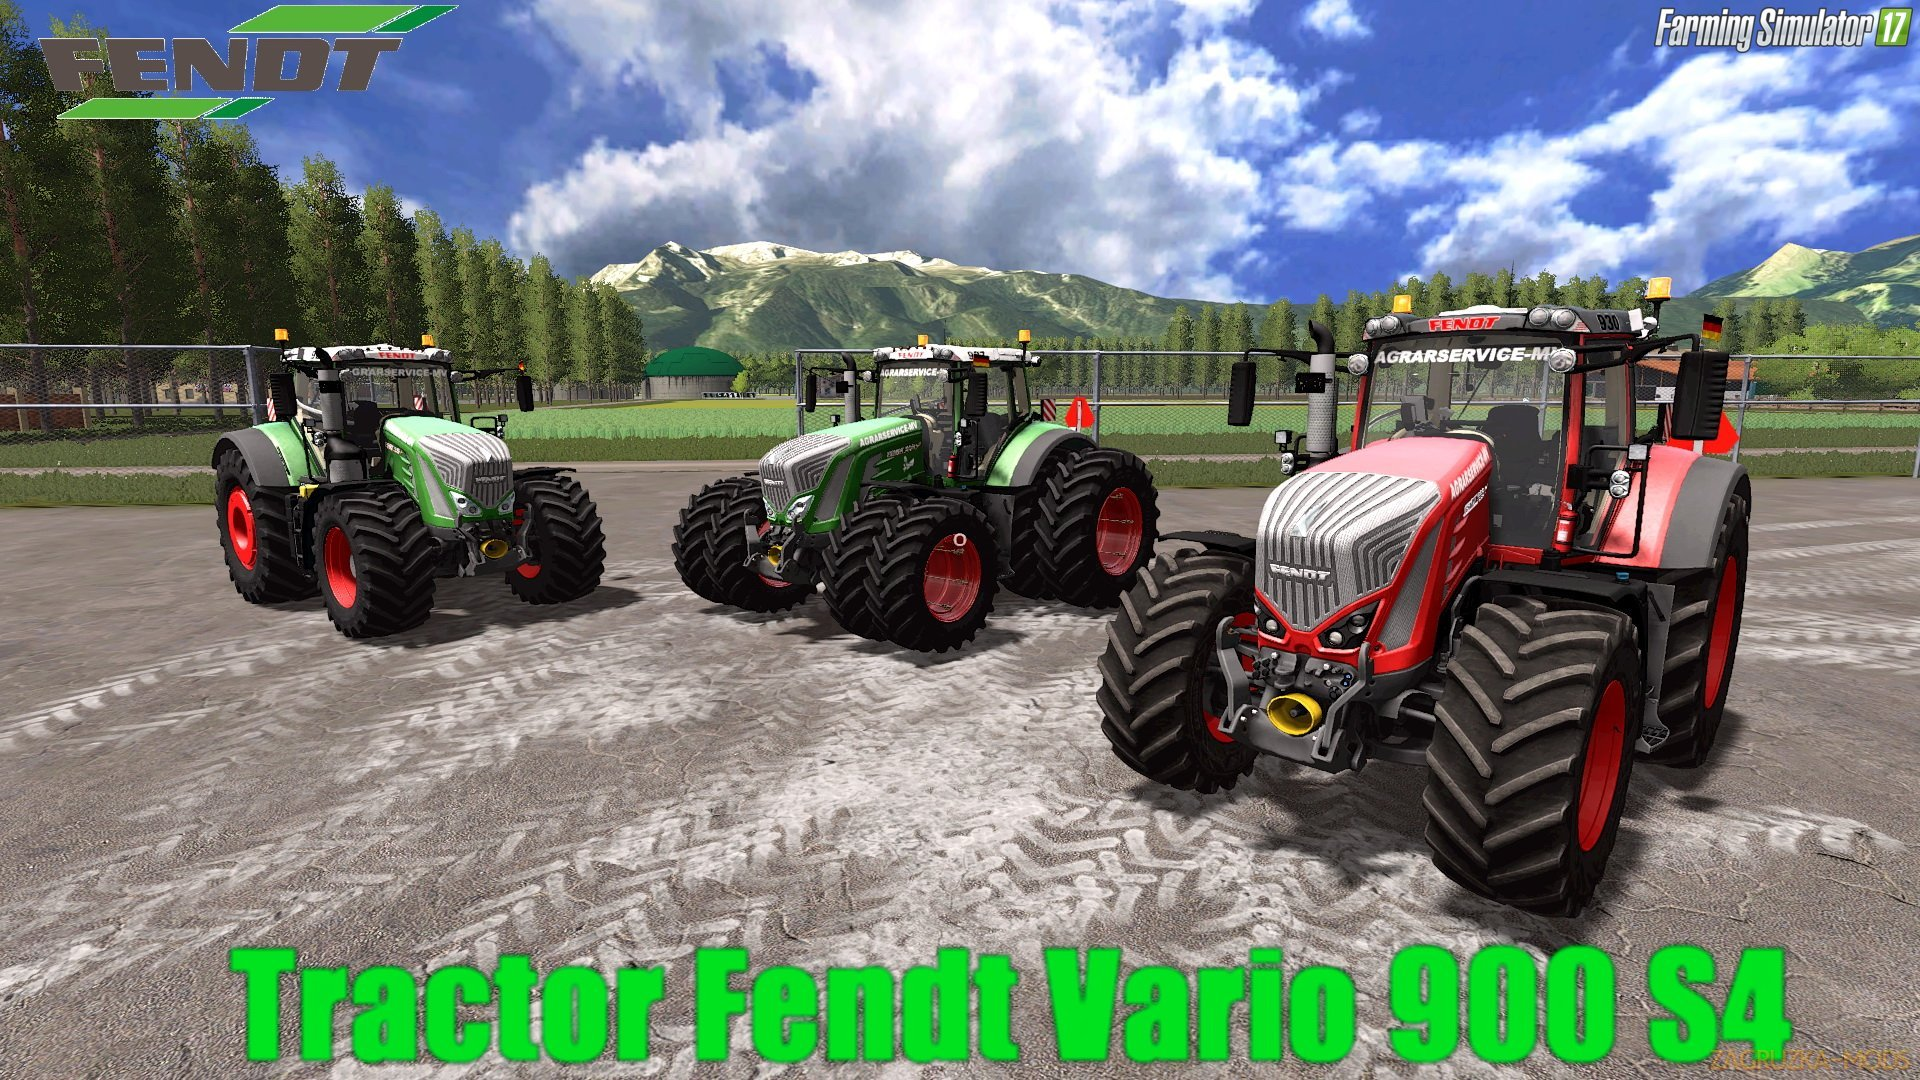 Fendt Vario 900 S4 v2.0 for FS 17